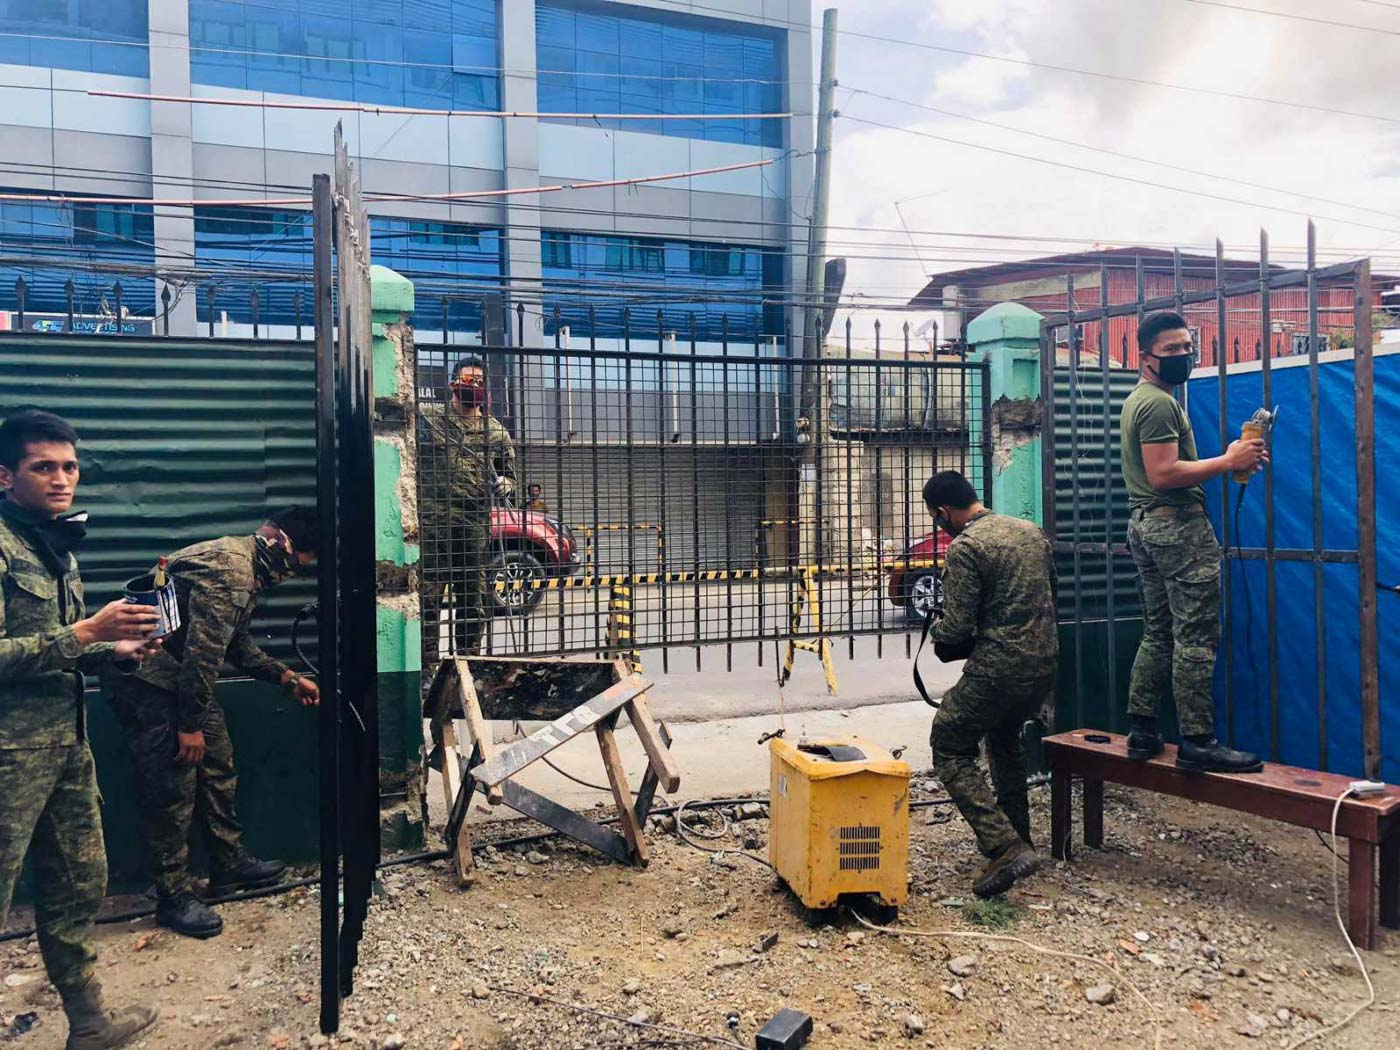 Through the concerted effort of the Inter-agency Task Force COVID-19, the 54th Engineer Brigade, and other stakeholders, Zamboanga City's COVID-19 Center is now ready to cater patients. Photo by Western Mindanao Command PIO